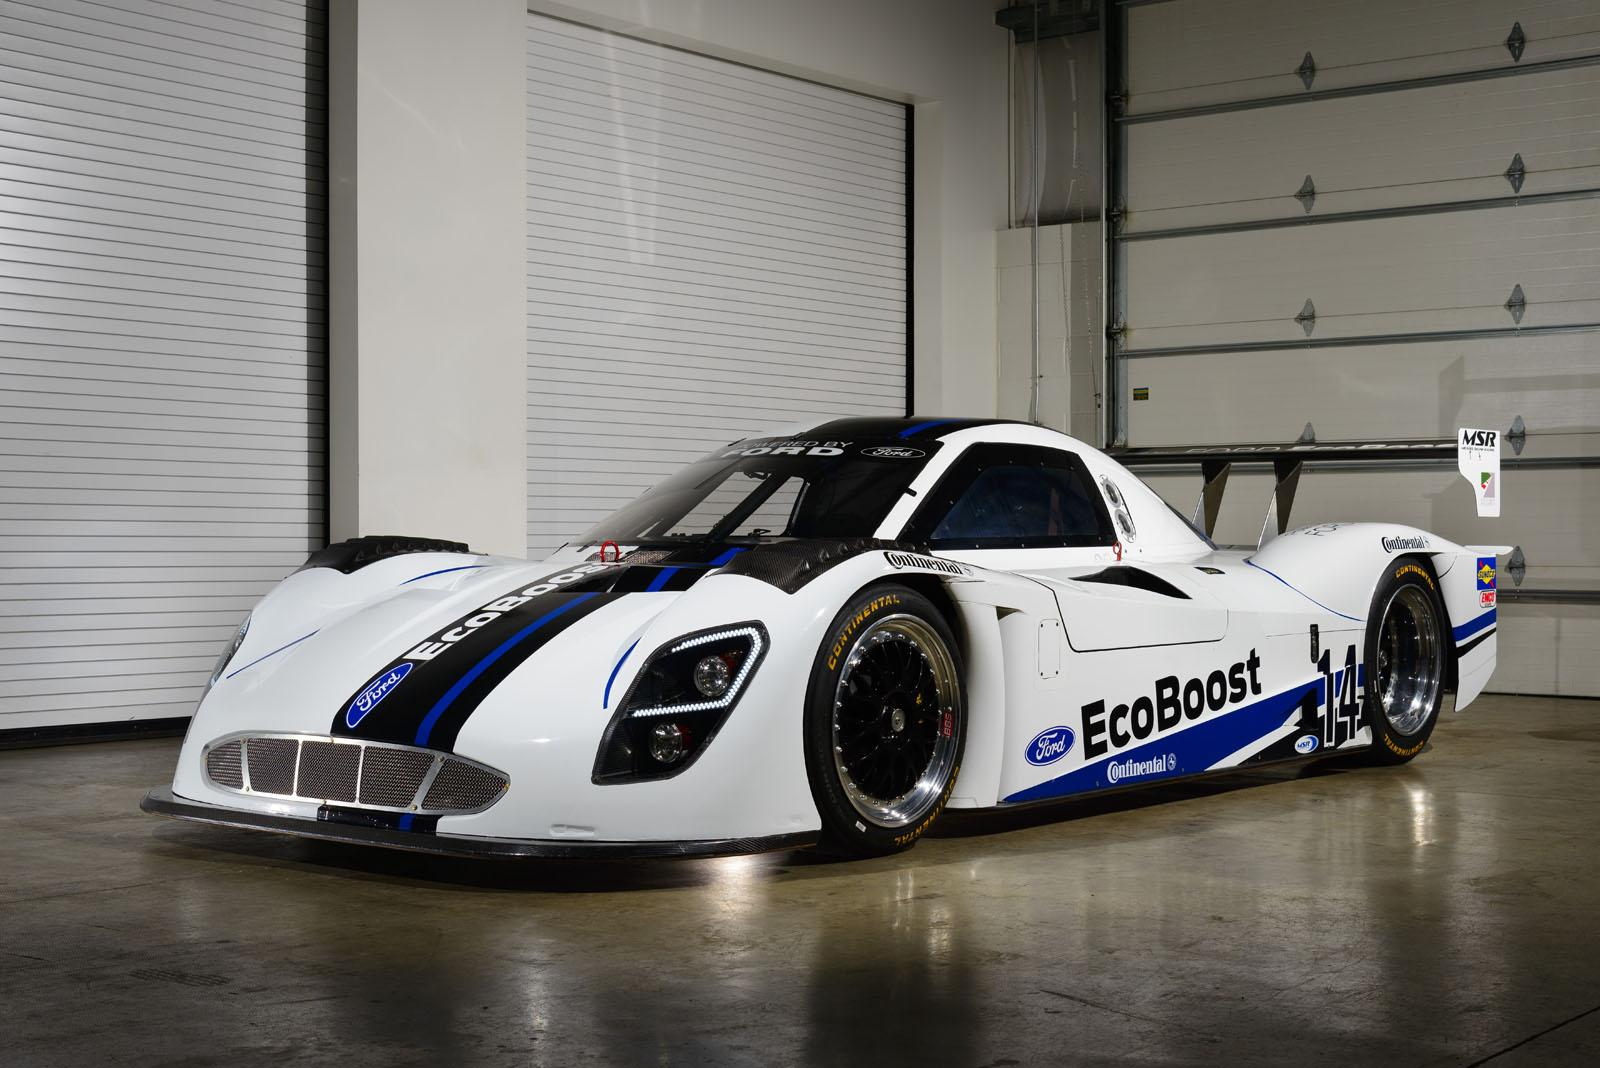 Official: Ford EcoBoost Prototype For 2014 TUDOR United SportsCar  Championship Series Design Inspirations